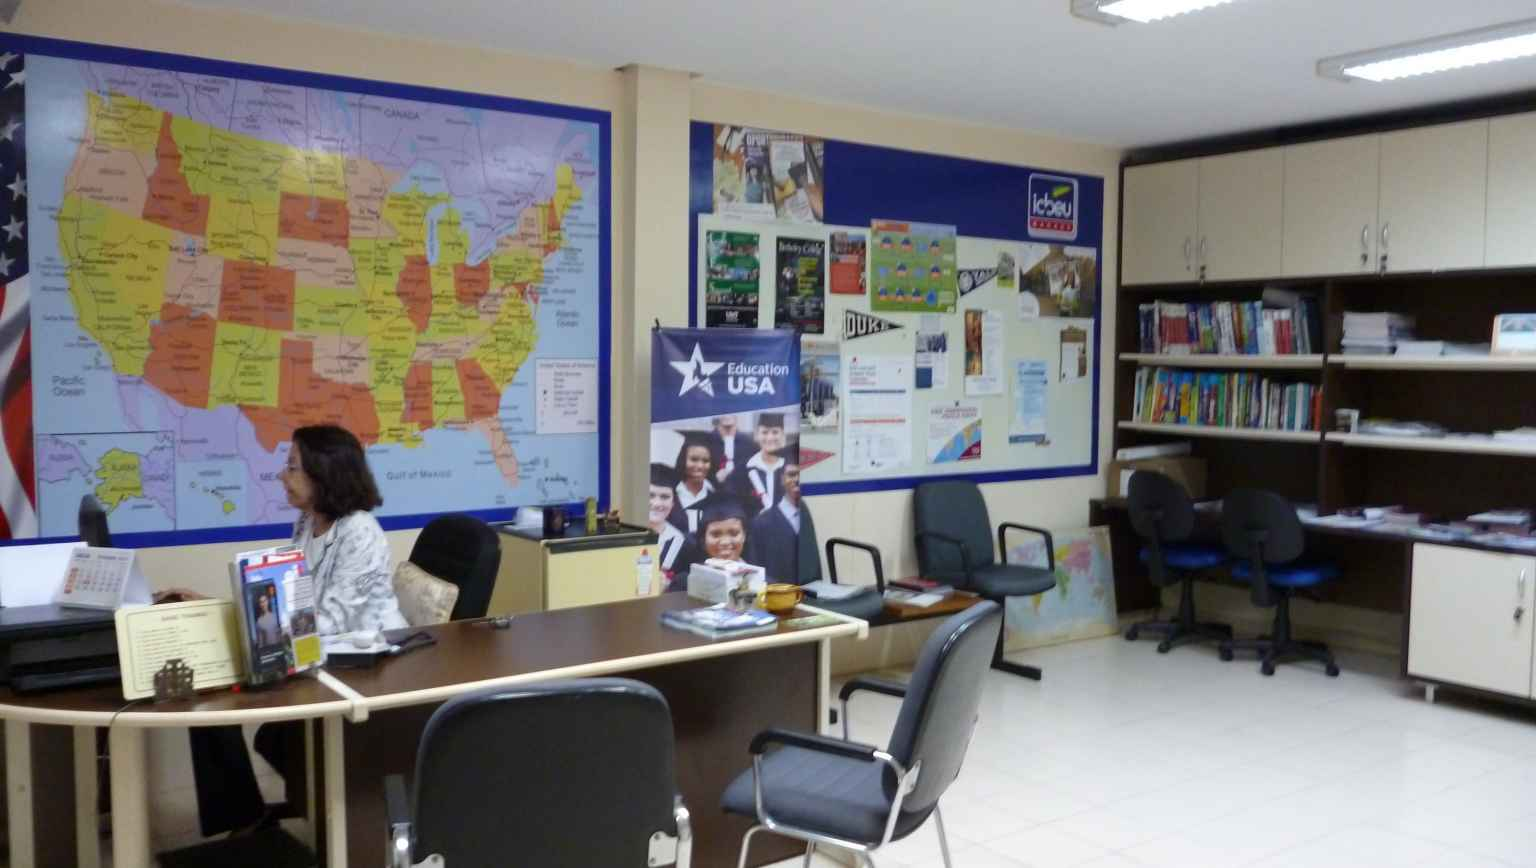 EducationUSA Office in Manaus for international students interested in studying in the US